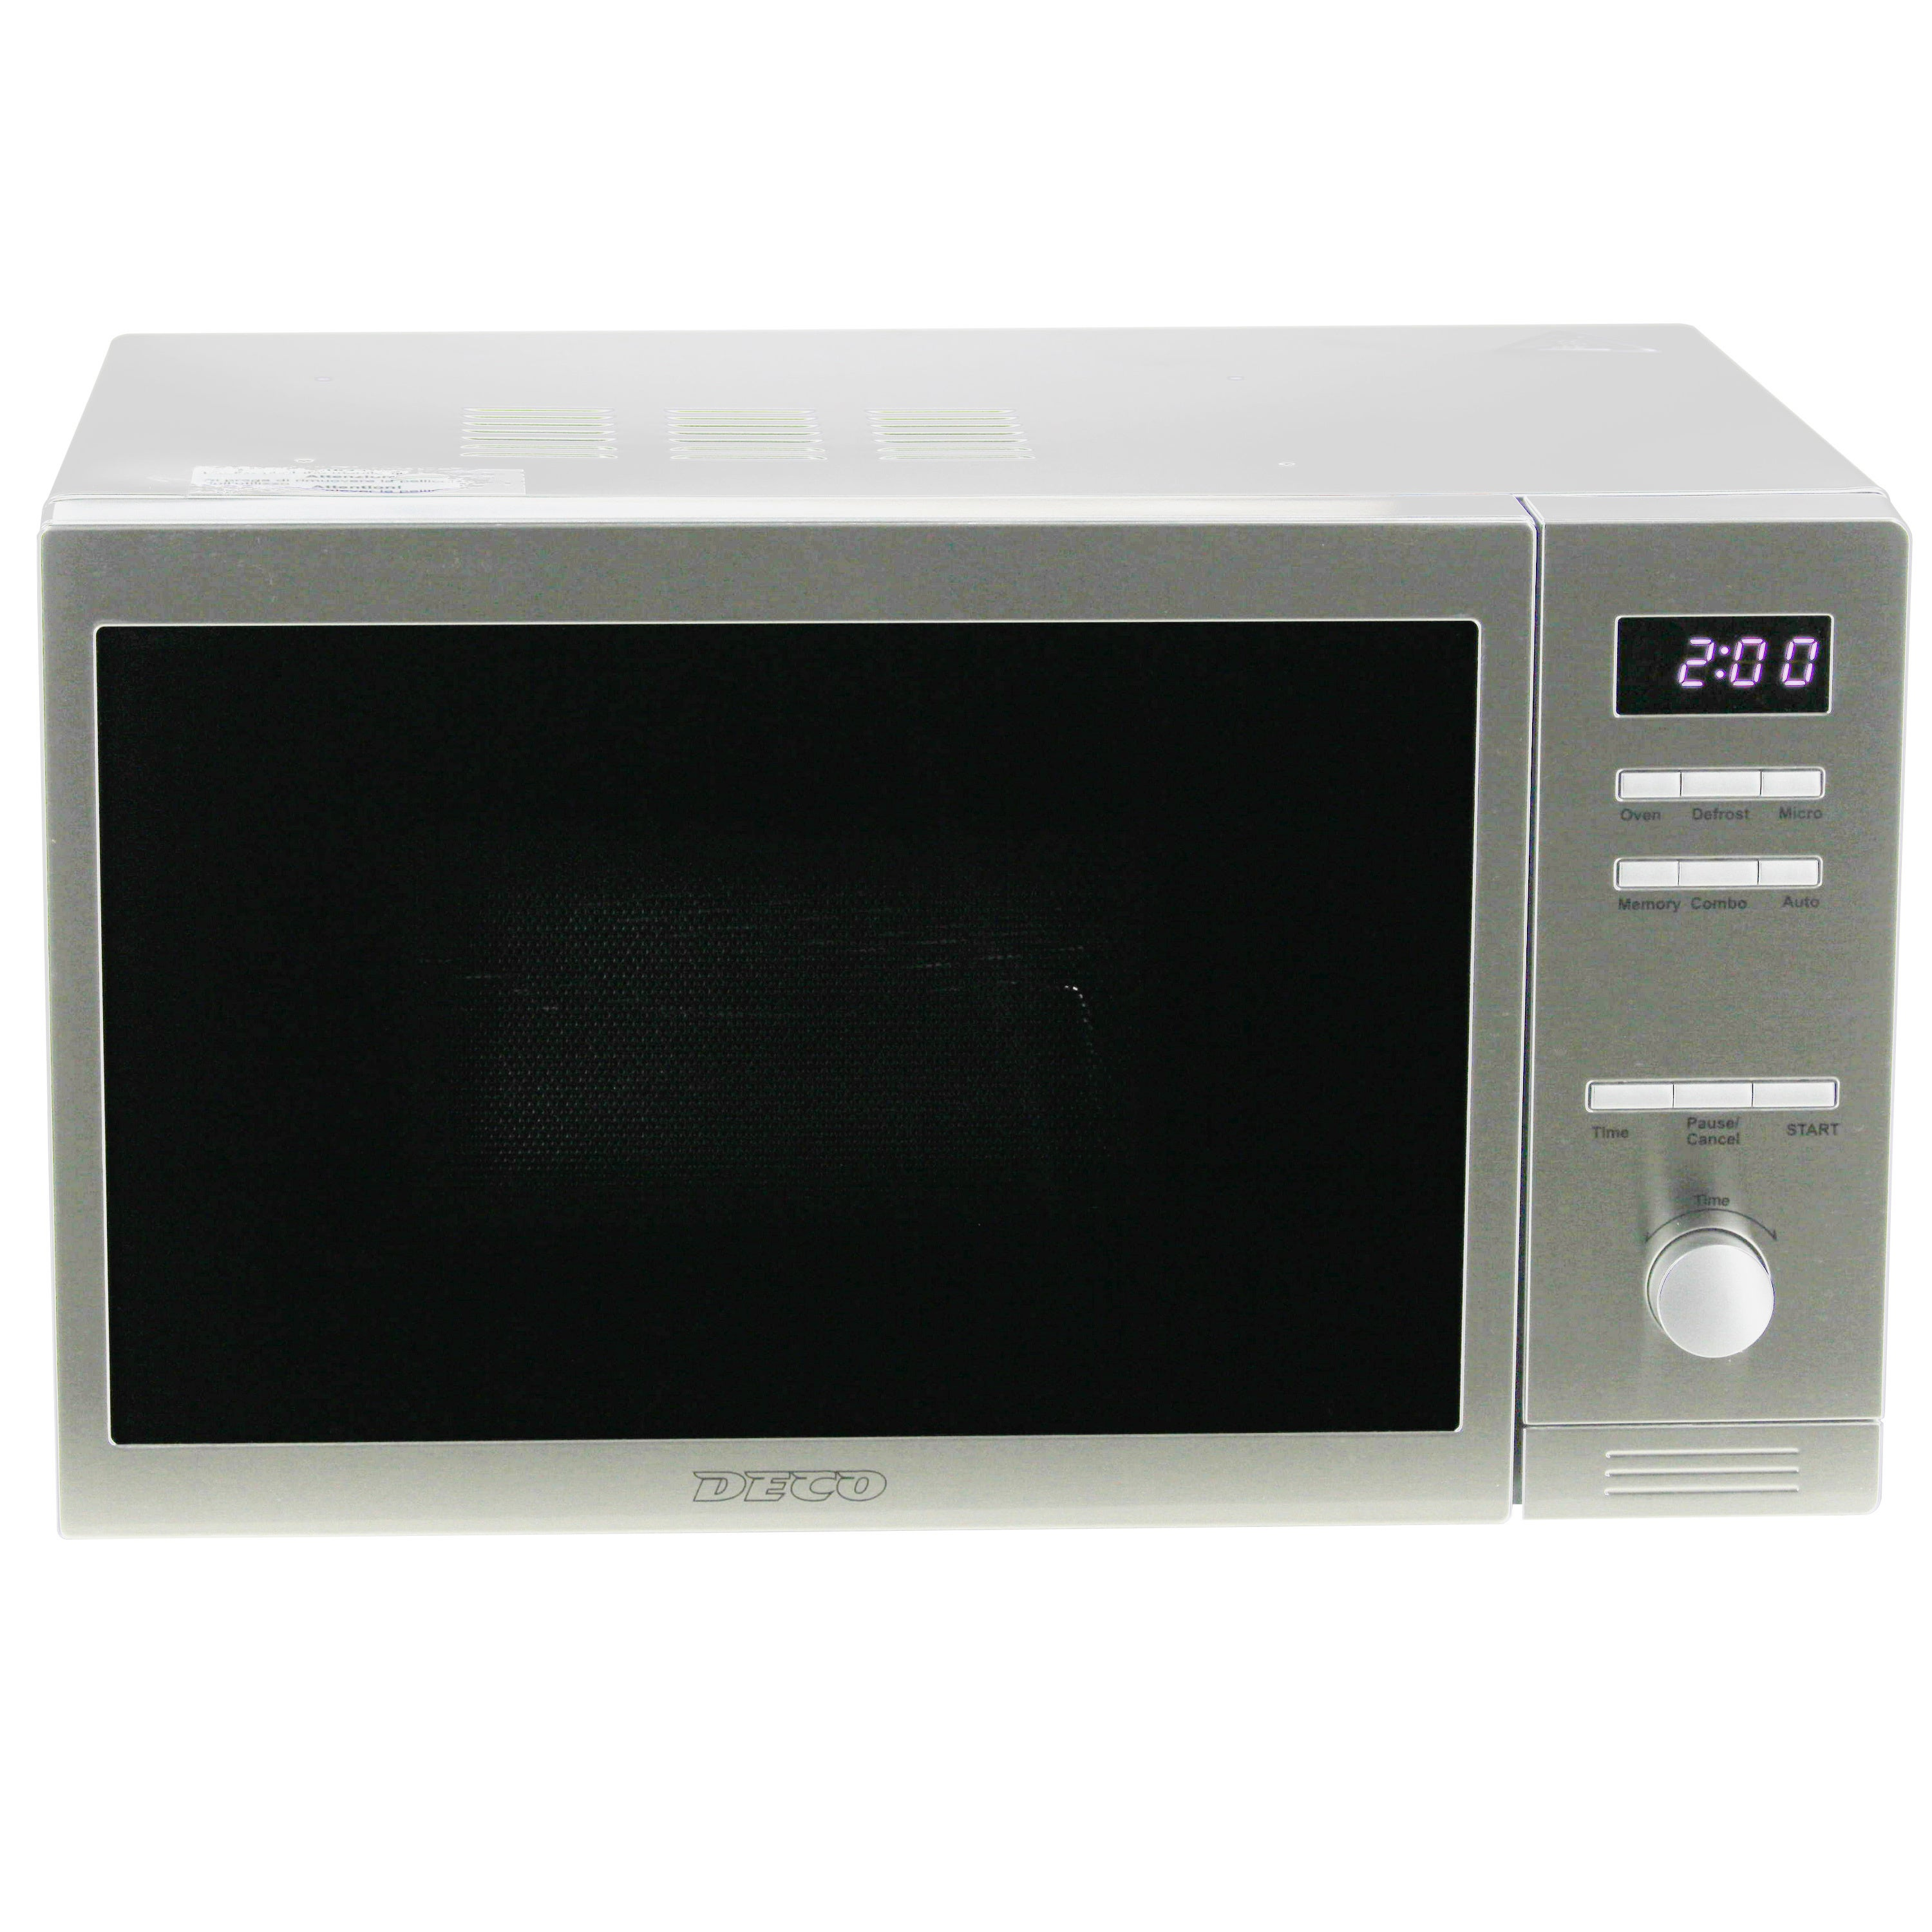 Combo Microwave Oven